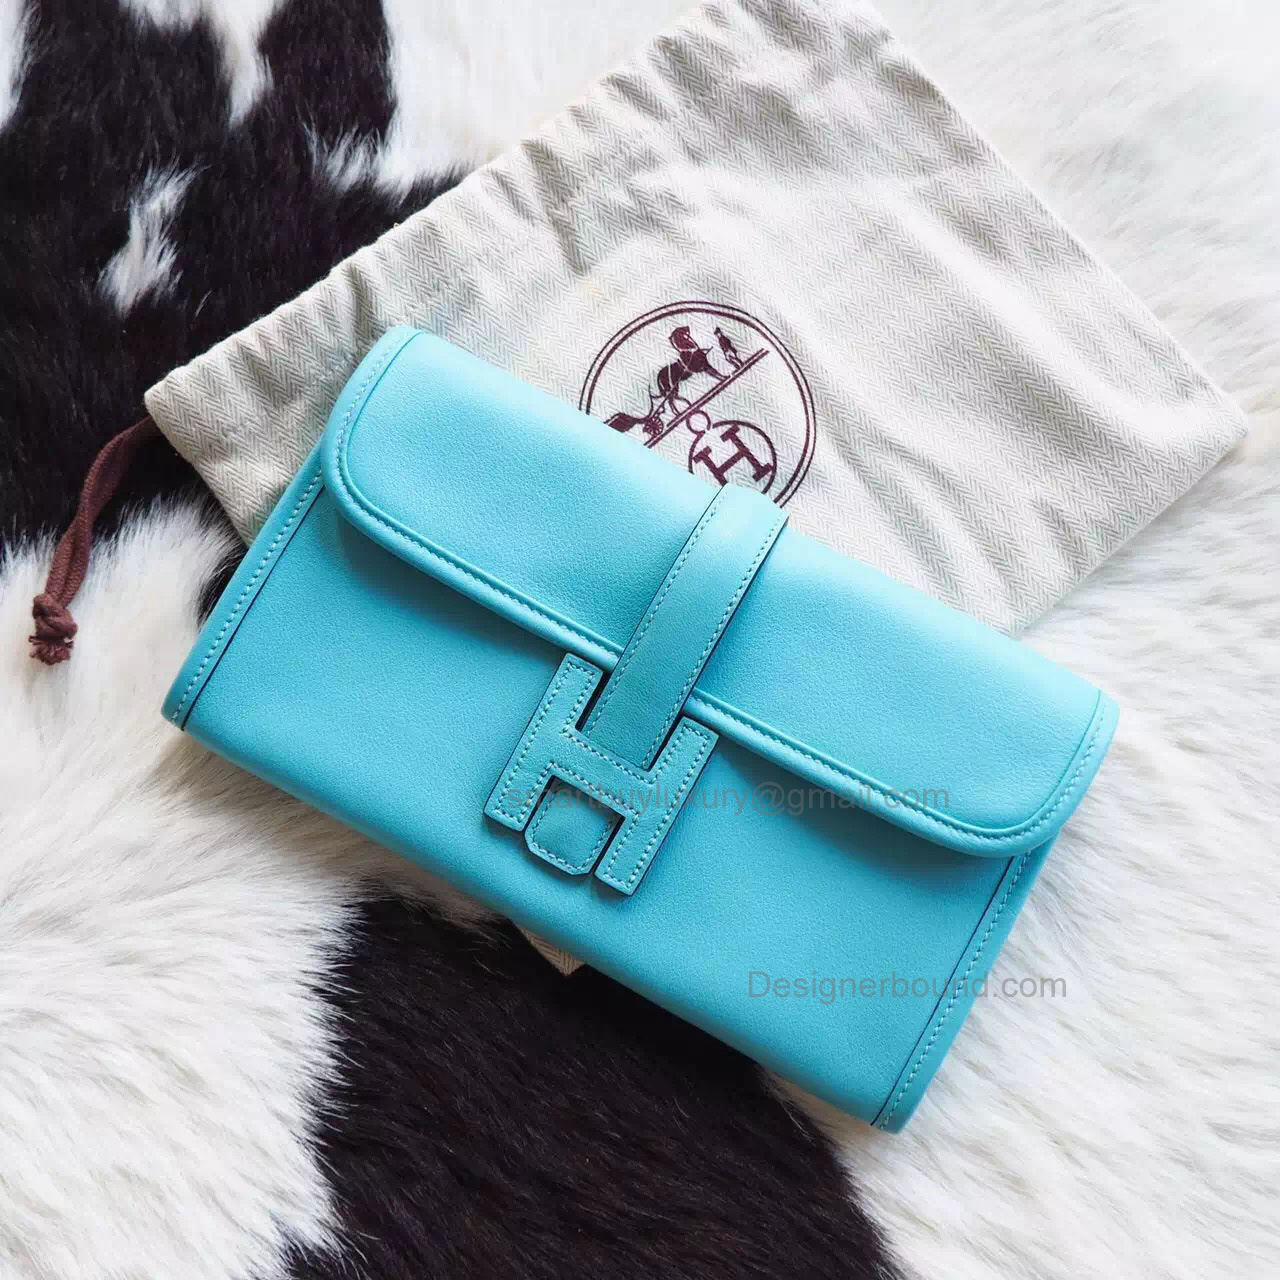 Copy Hermes Jige Duo Mini Clutch Handmade in Atoll Blue 3p Swift Calfskin